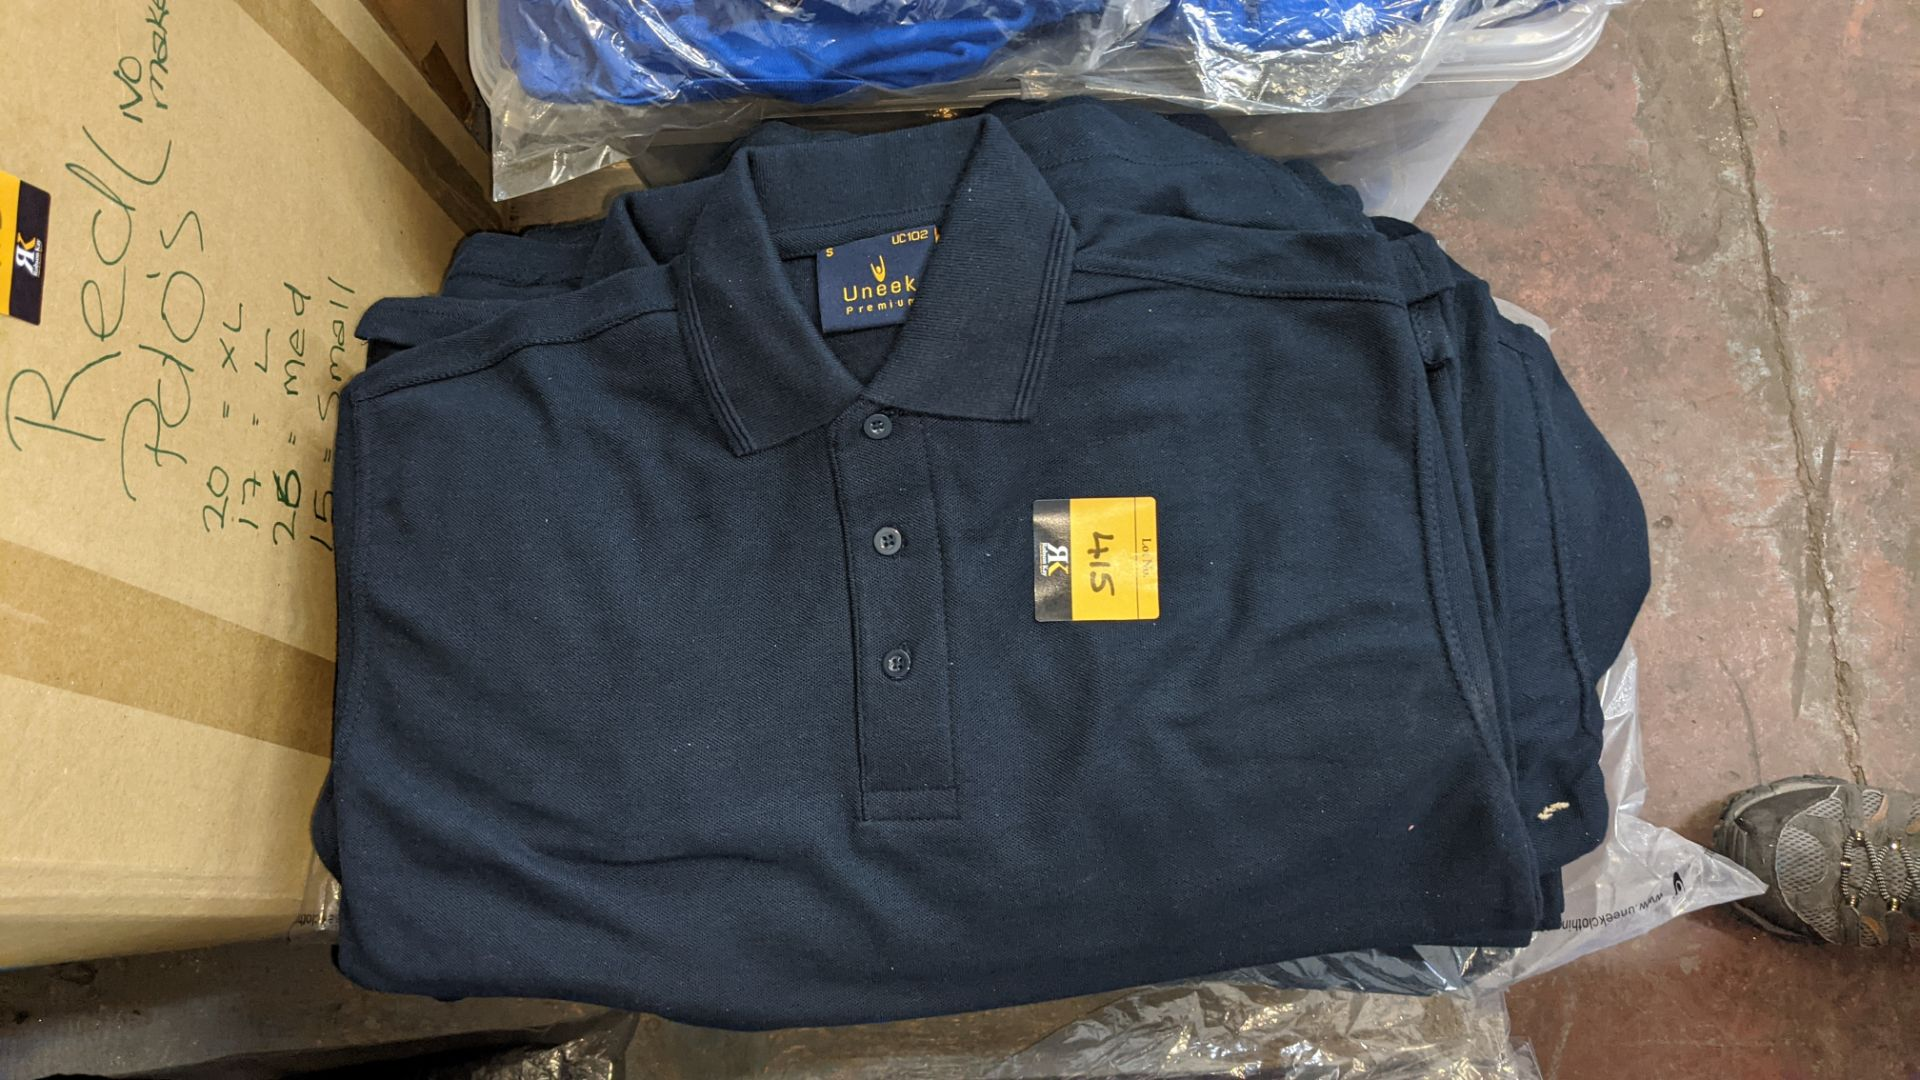 Approx 50 off Uneek dark blue polo shirts - Image 3 of 4